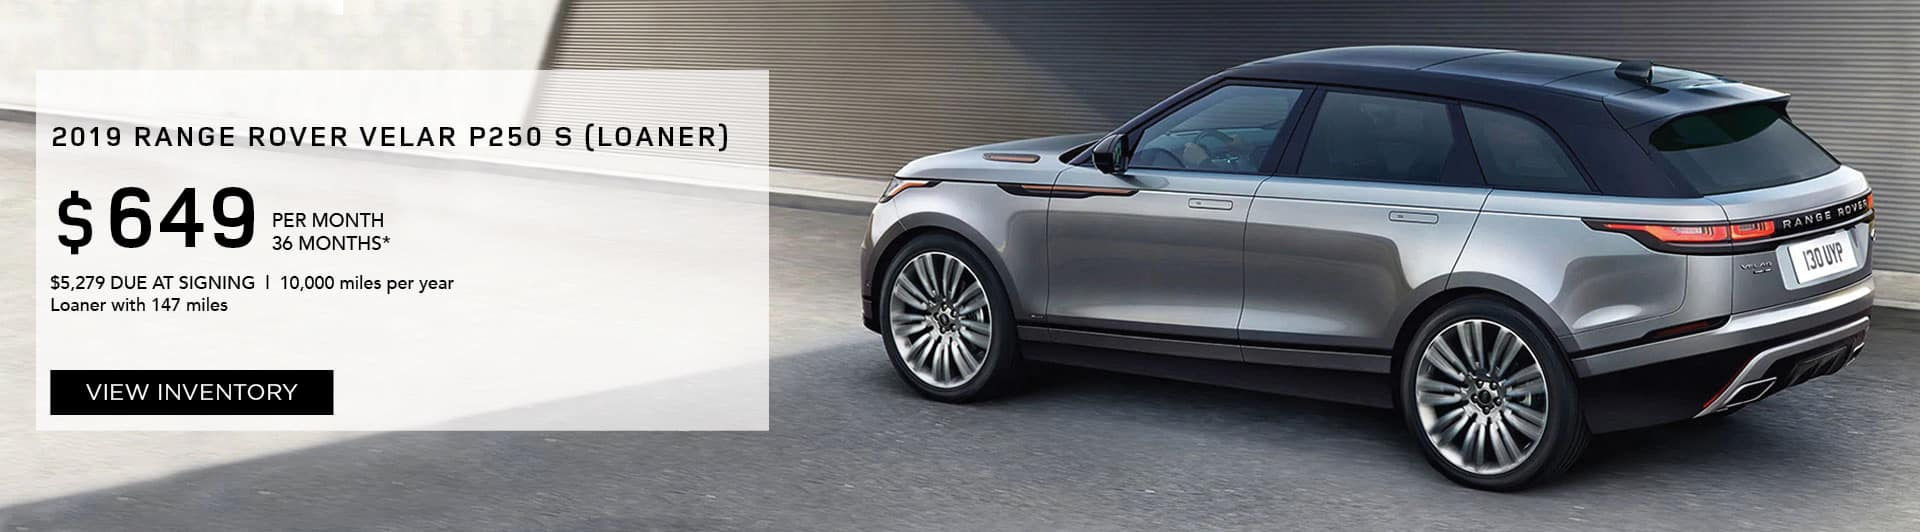 Land Rover Louisville >> Land Rover Louisville Upcoming New Car Release 2020